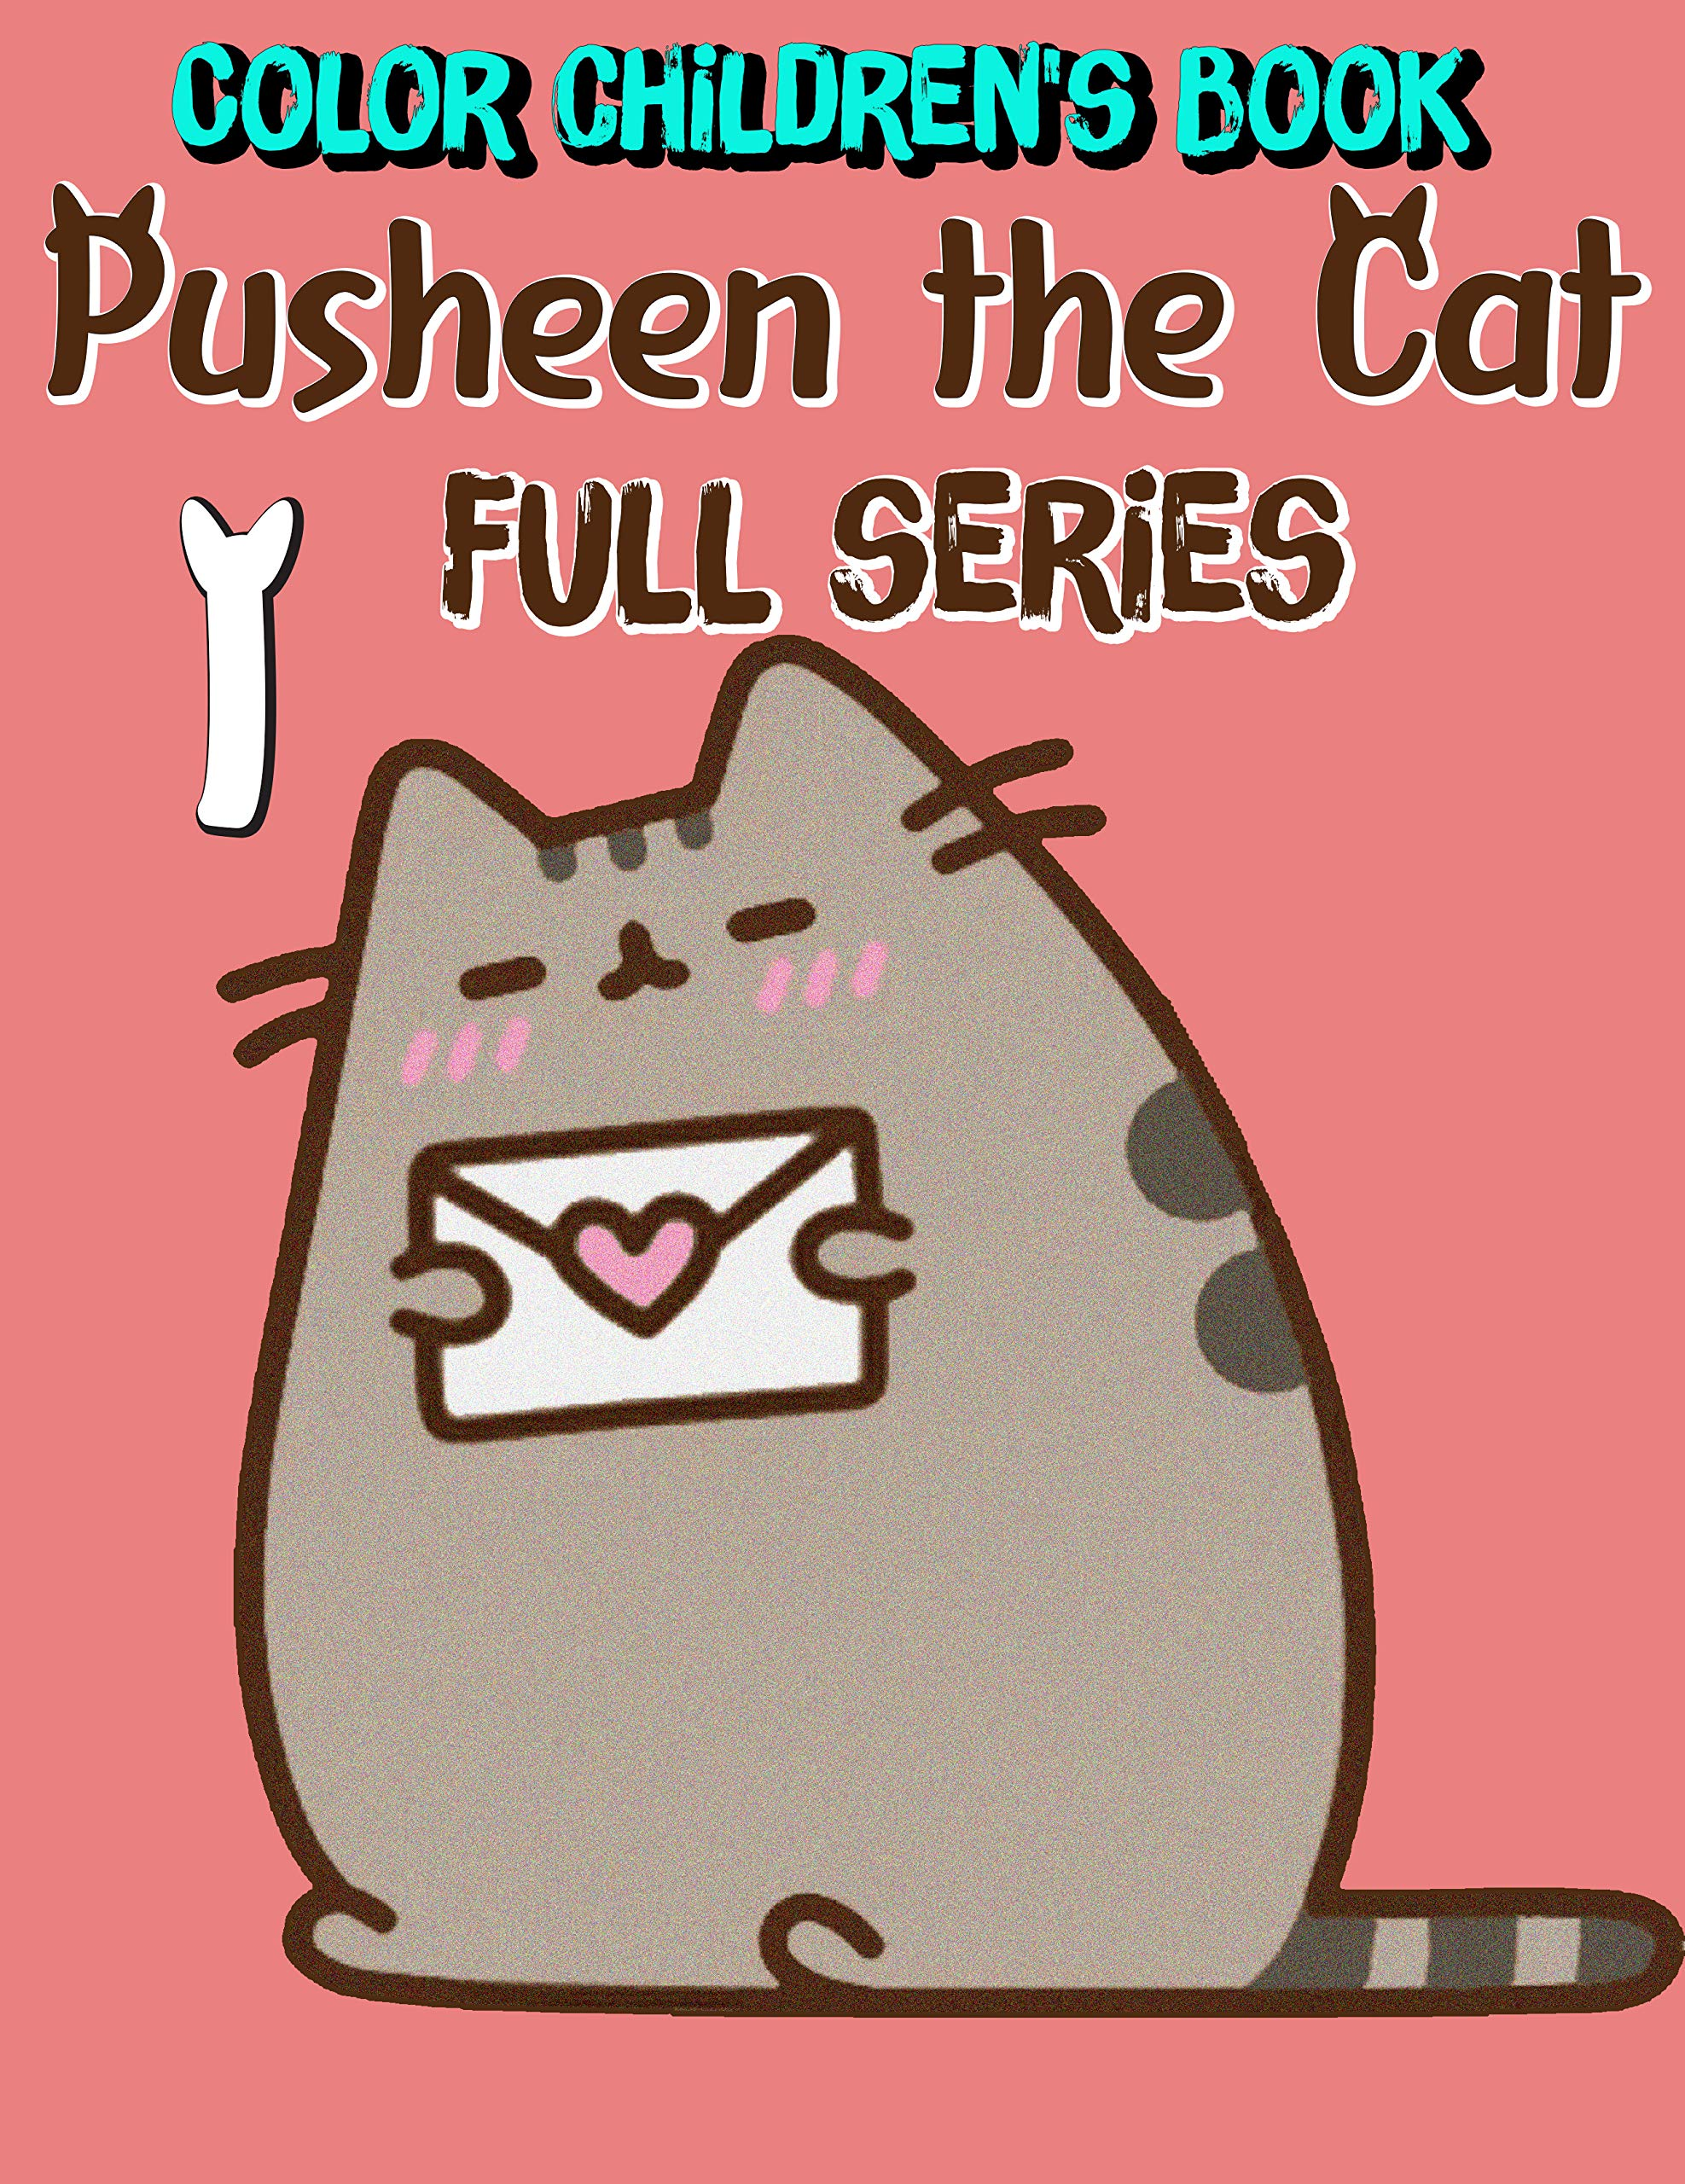 Color children's book Pusheen the Cat Full series: Funny Pusheen the Cat Limited Edition Volume 1